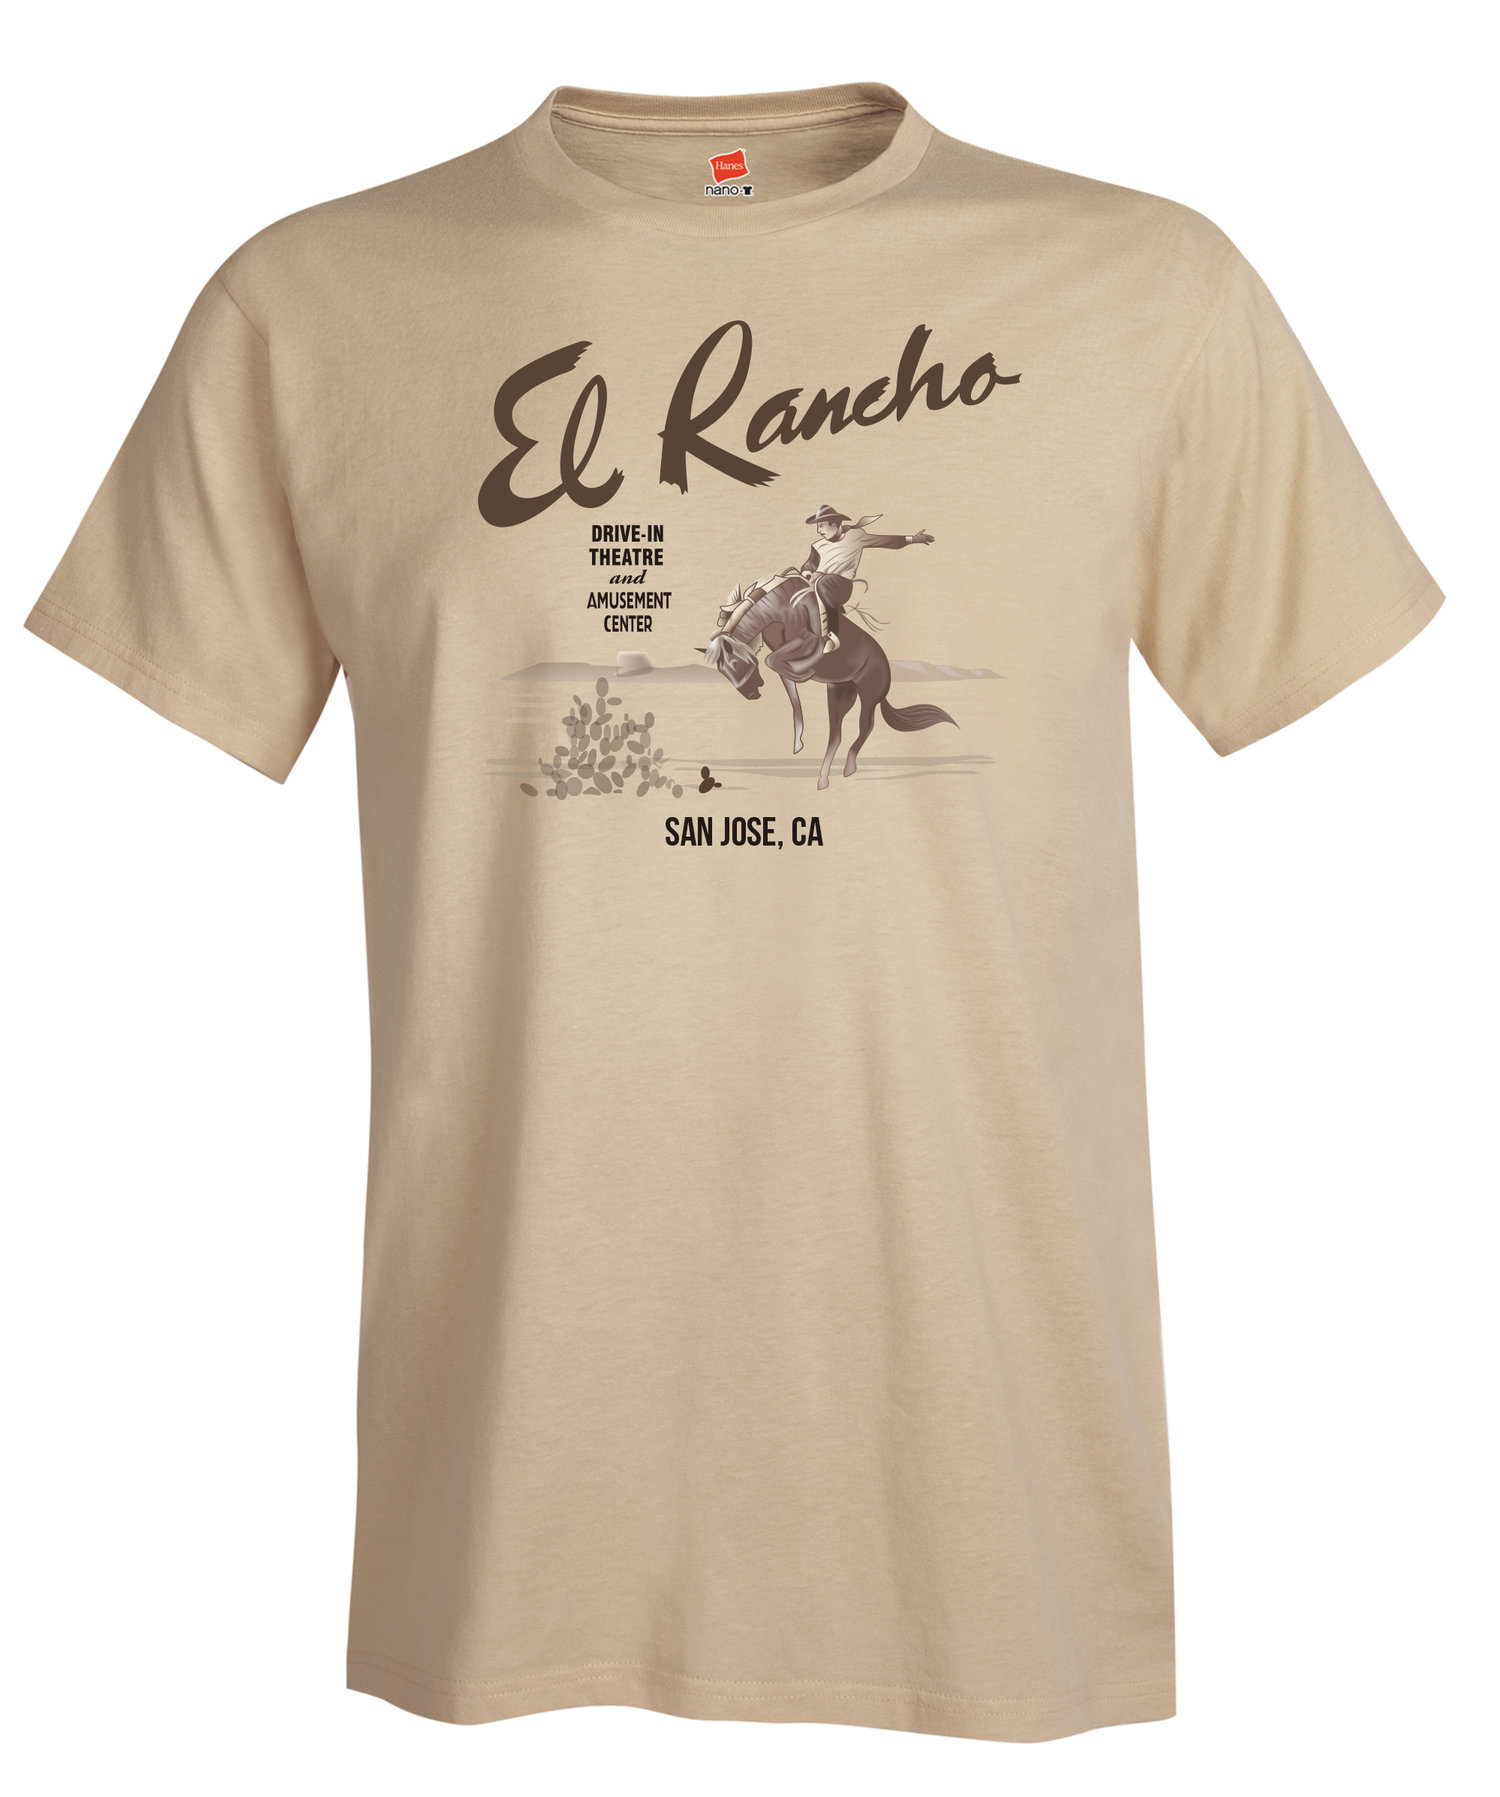 El Rancho Drive In Theater Sign Reproduction T Shirt Vintage Advertising Art The Art Boutiki